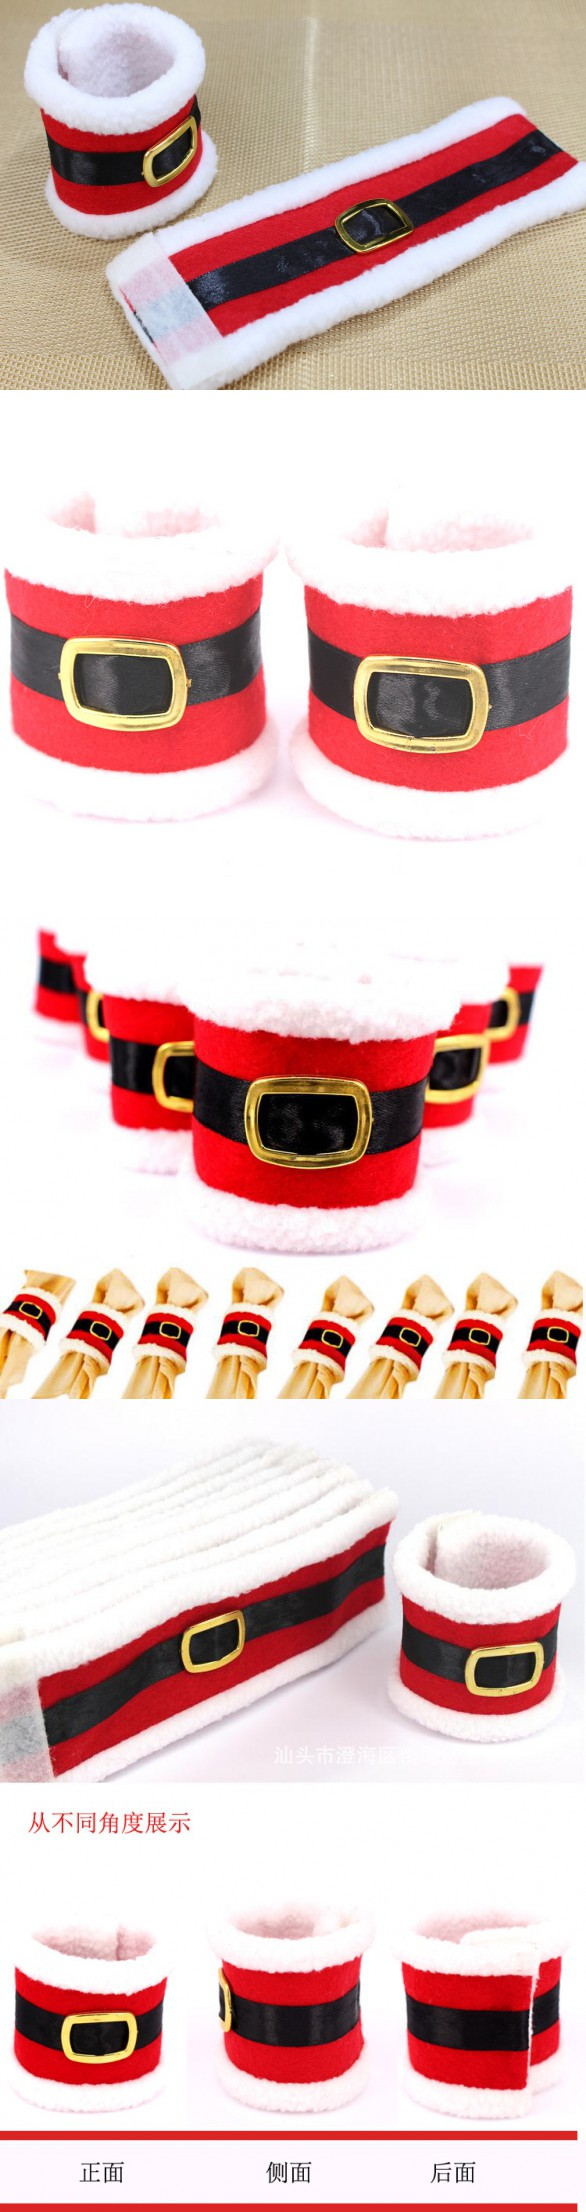 free by ems 500pcs Christmas Home Table Party Dninner Decor 2016 New Year  Xmas Napkin Cover Santa Clause Suit Napkin Rings